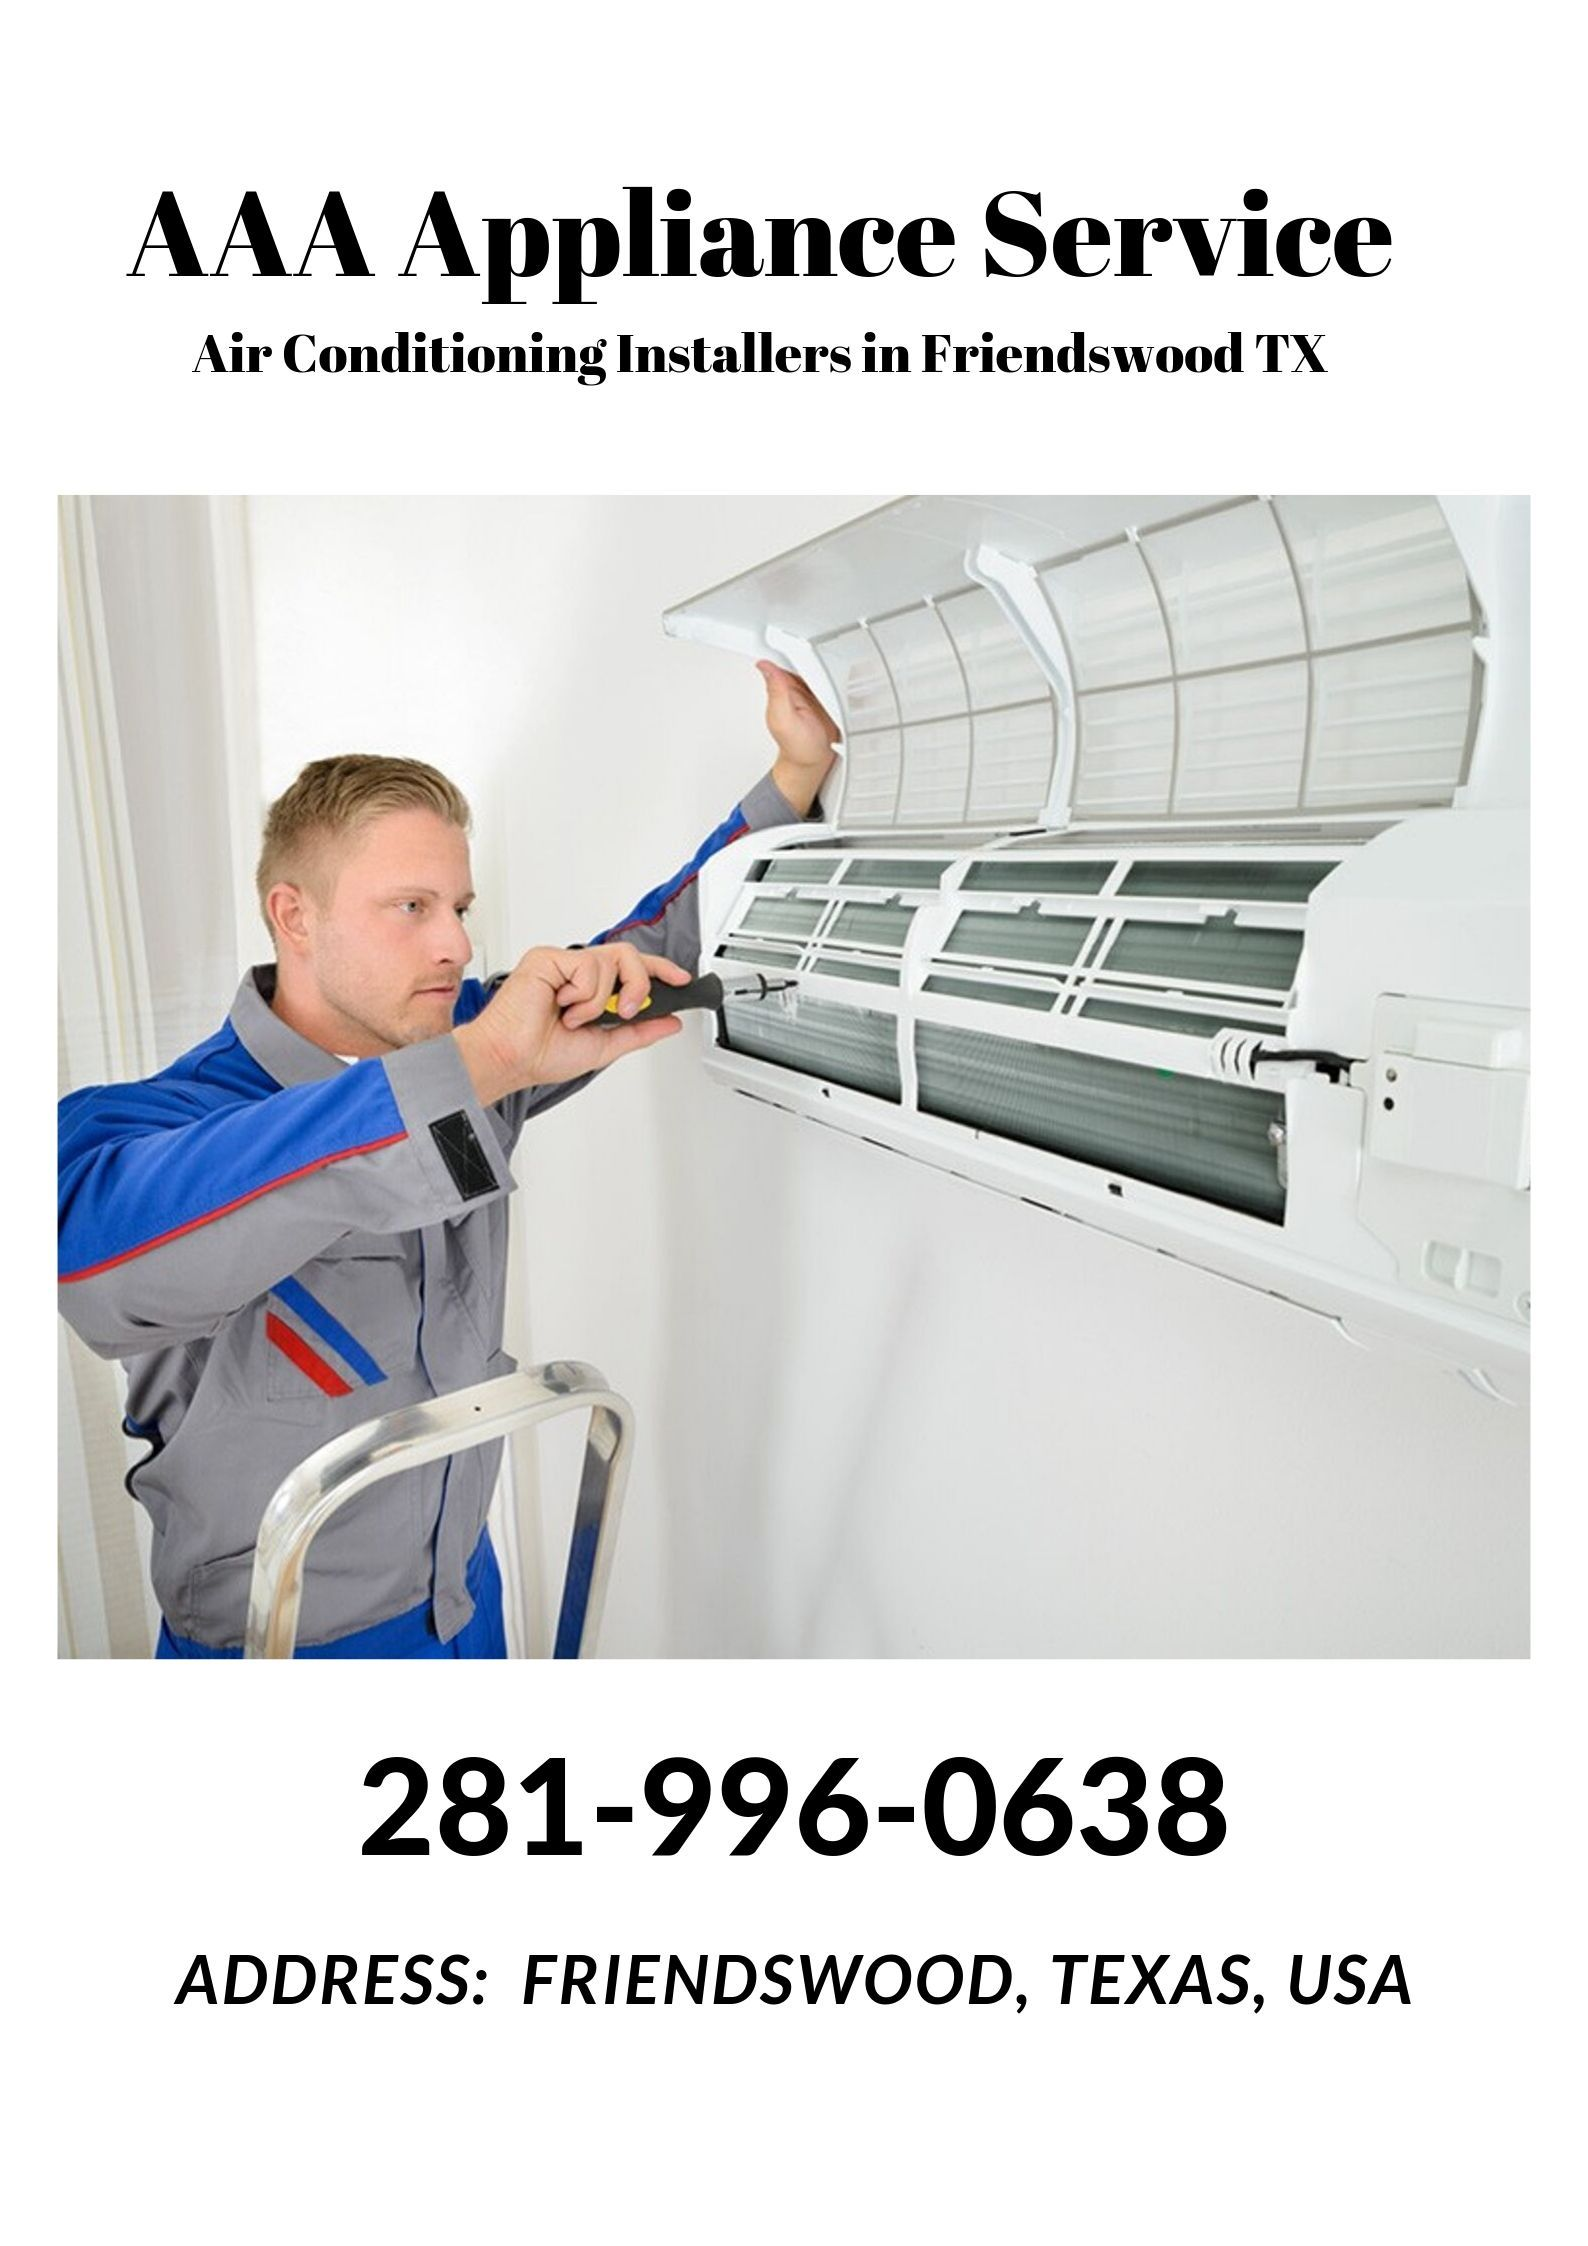 We offer the best air conditioning installation services